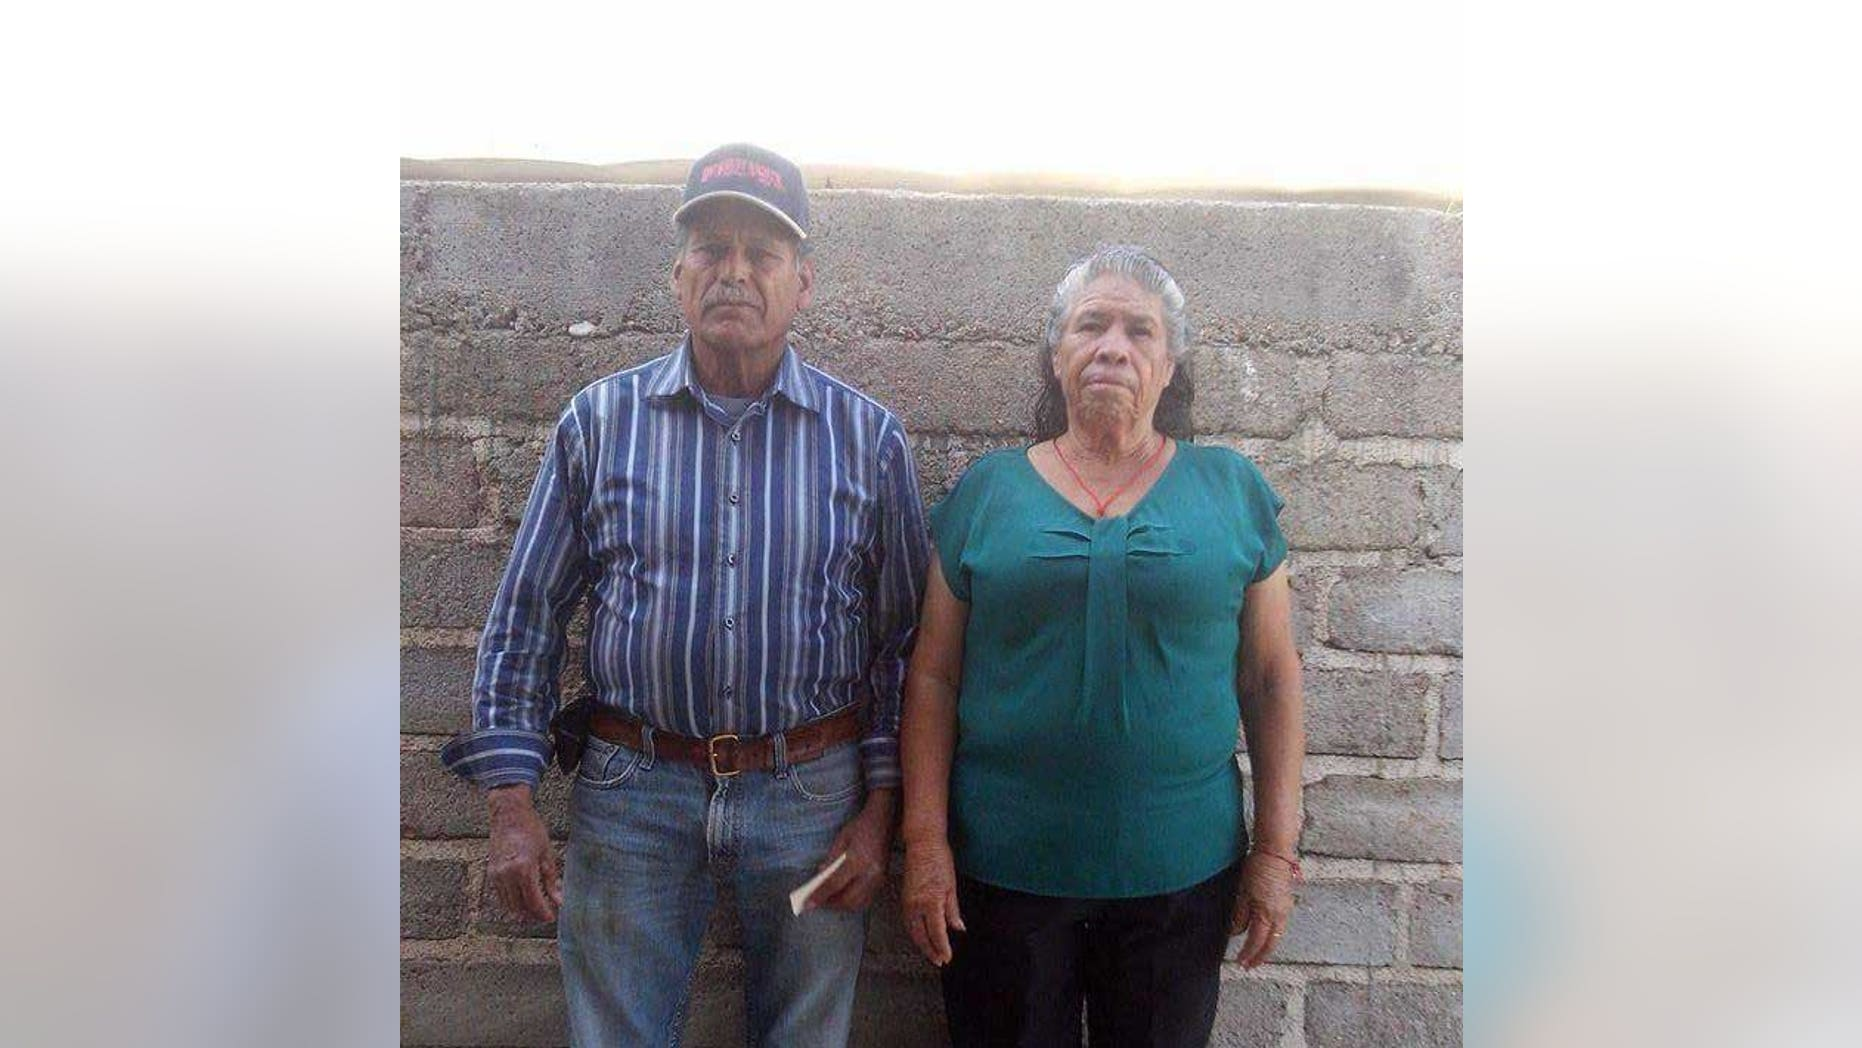 In this photo taken on Dec. 7, 2015,  and provided the Esparza family, Jose Isabel Esparza, 69, and his wife, Maria Esparza, 65, pose at their home on a farm in Cuachtemoc, Mexico, west of Mexico City. They have filed a lawsuit in U.S. District Court in Reno, Nevada against the U.S. State Department challenging denial of a visa for Maria to join her husband living and working in Nevada. They have been trying to obtain the visa since 1994. (Esparza Family via AP)